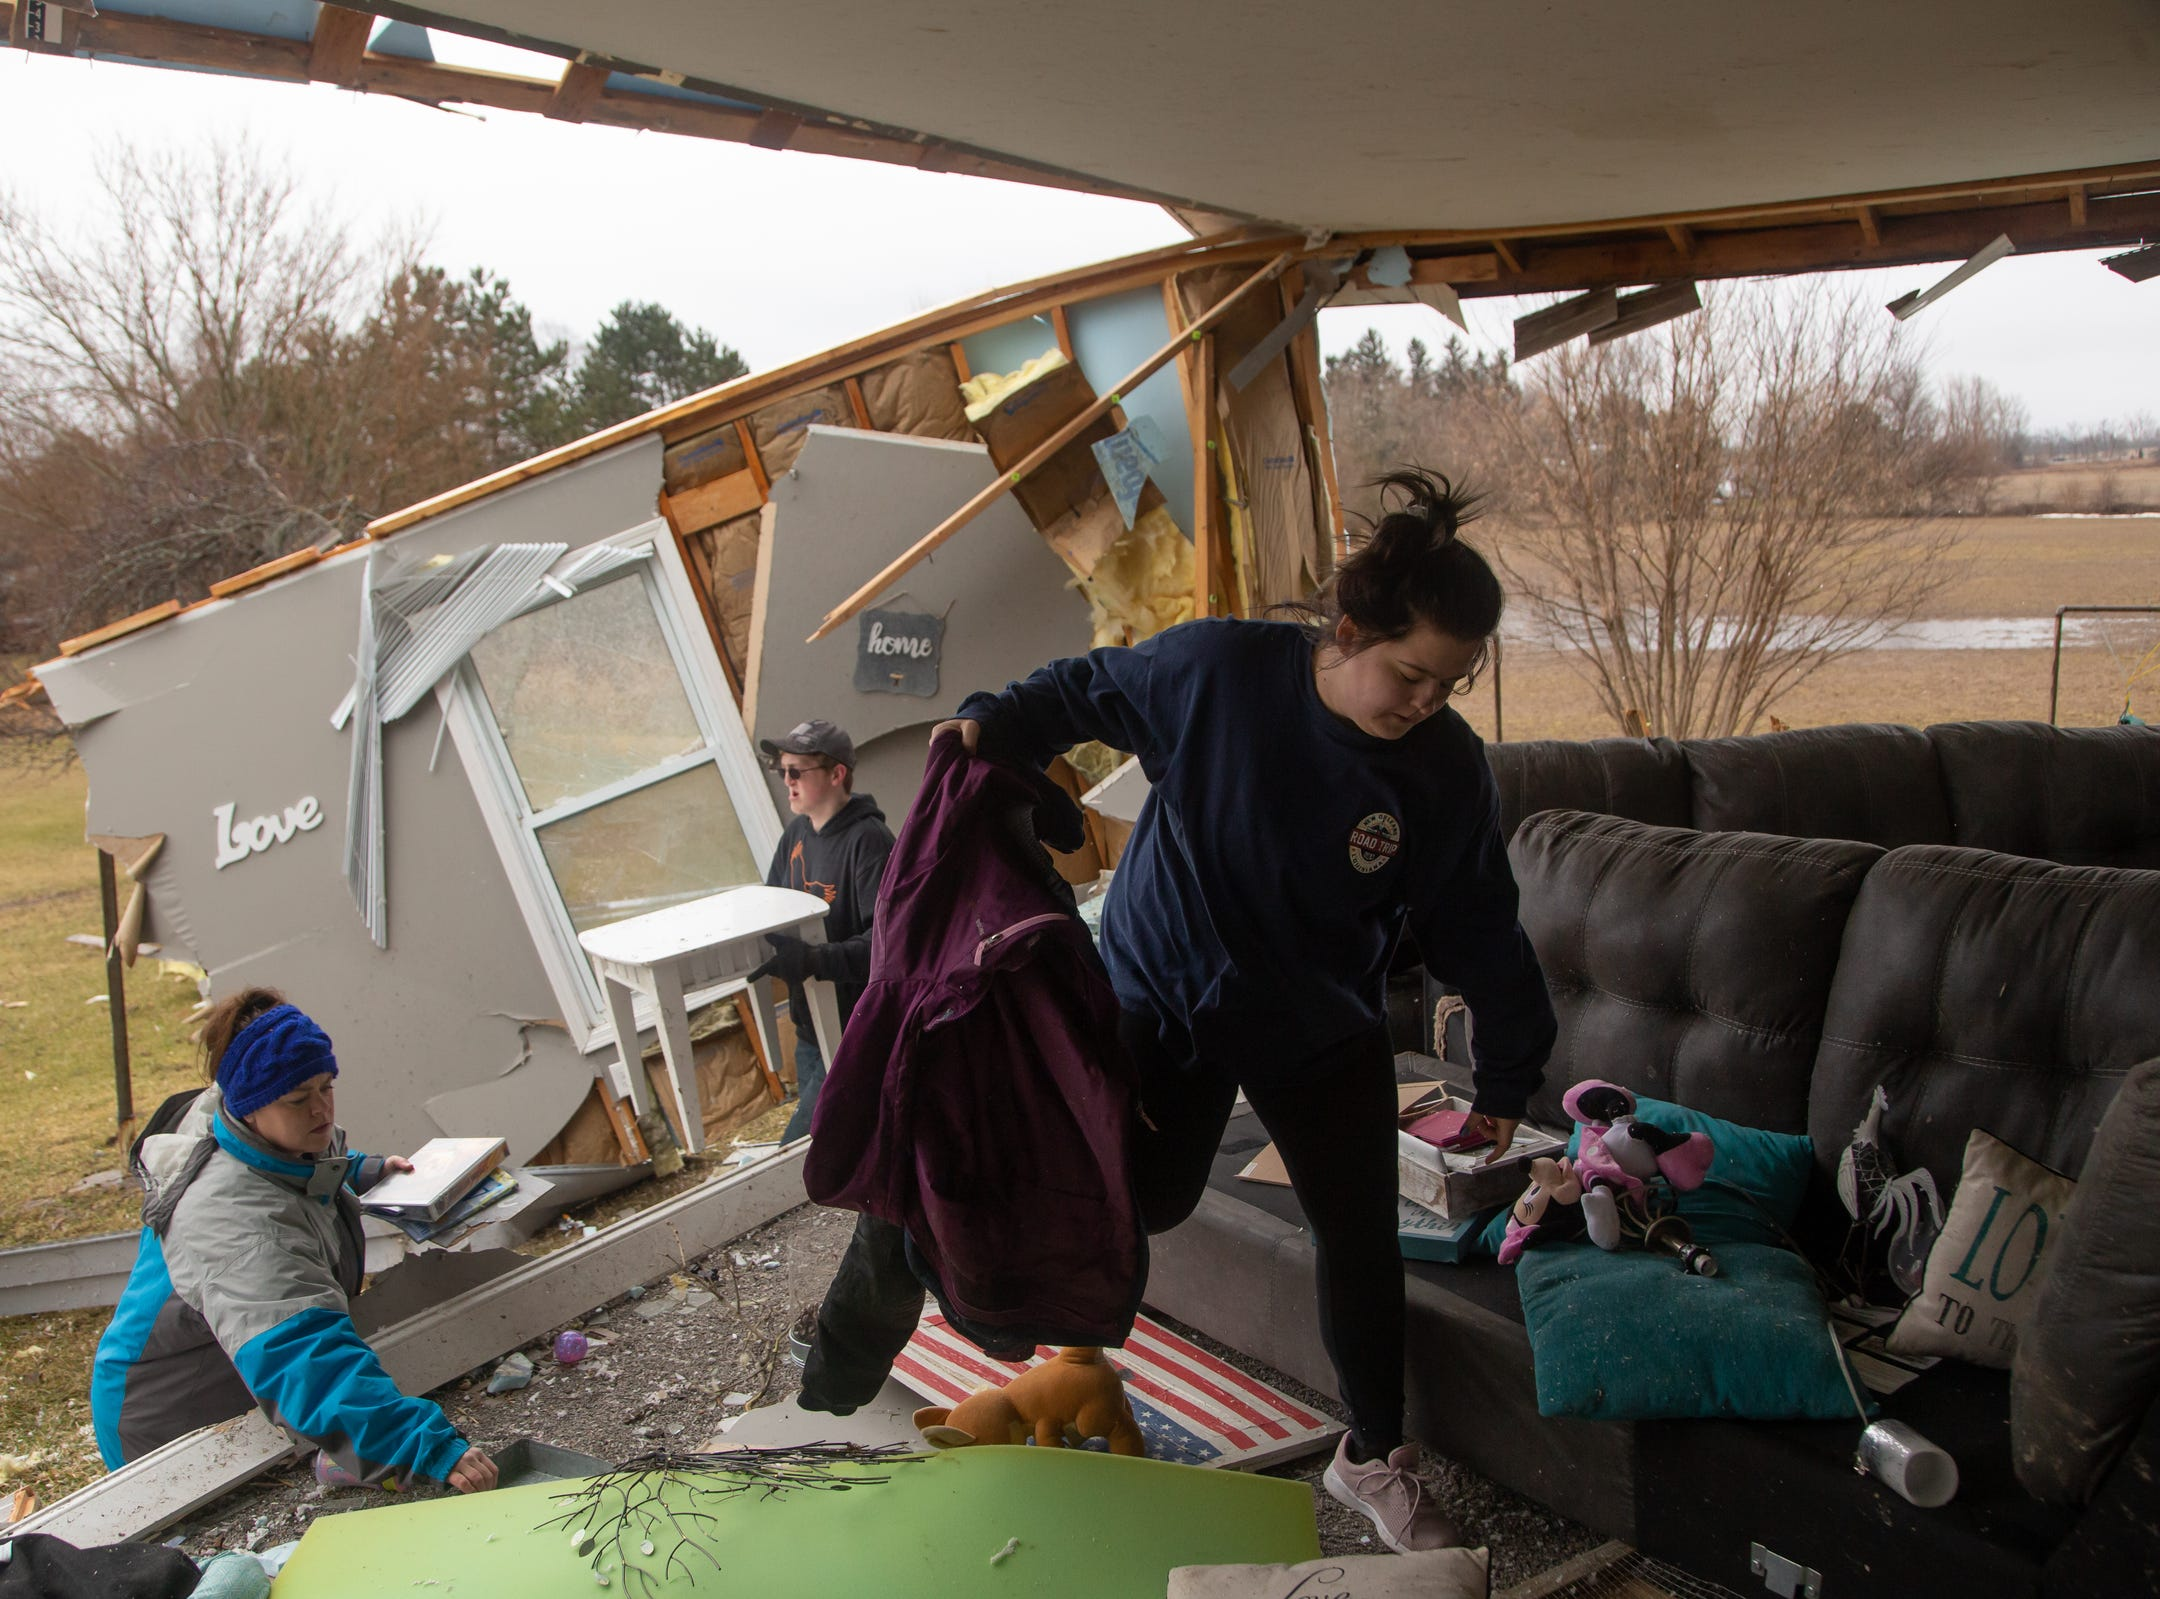 """Mackenzie Weaver helps clear items from the living room area of her mother's home in Bancroft on Friday, March 15, 2019that was damaged after a tornado moved through Shiawassee County overnight. """"When I came to the house today I wasn't expecting it to be as bad as it really is. It freaked me out it really did. I was crying hysterically. I called in to work today so I could help them out,"""" Weaver said.Weavers mother and her six foster children were in the house at the time of the tornado hitting and got a call from her mother-in-law to get in the basement seconds before it hit."""